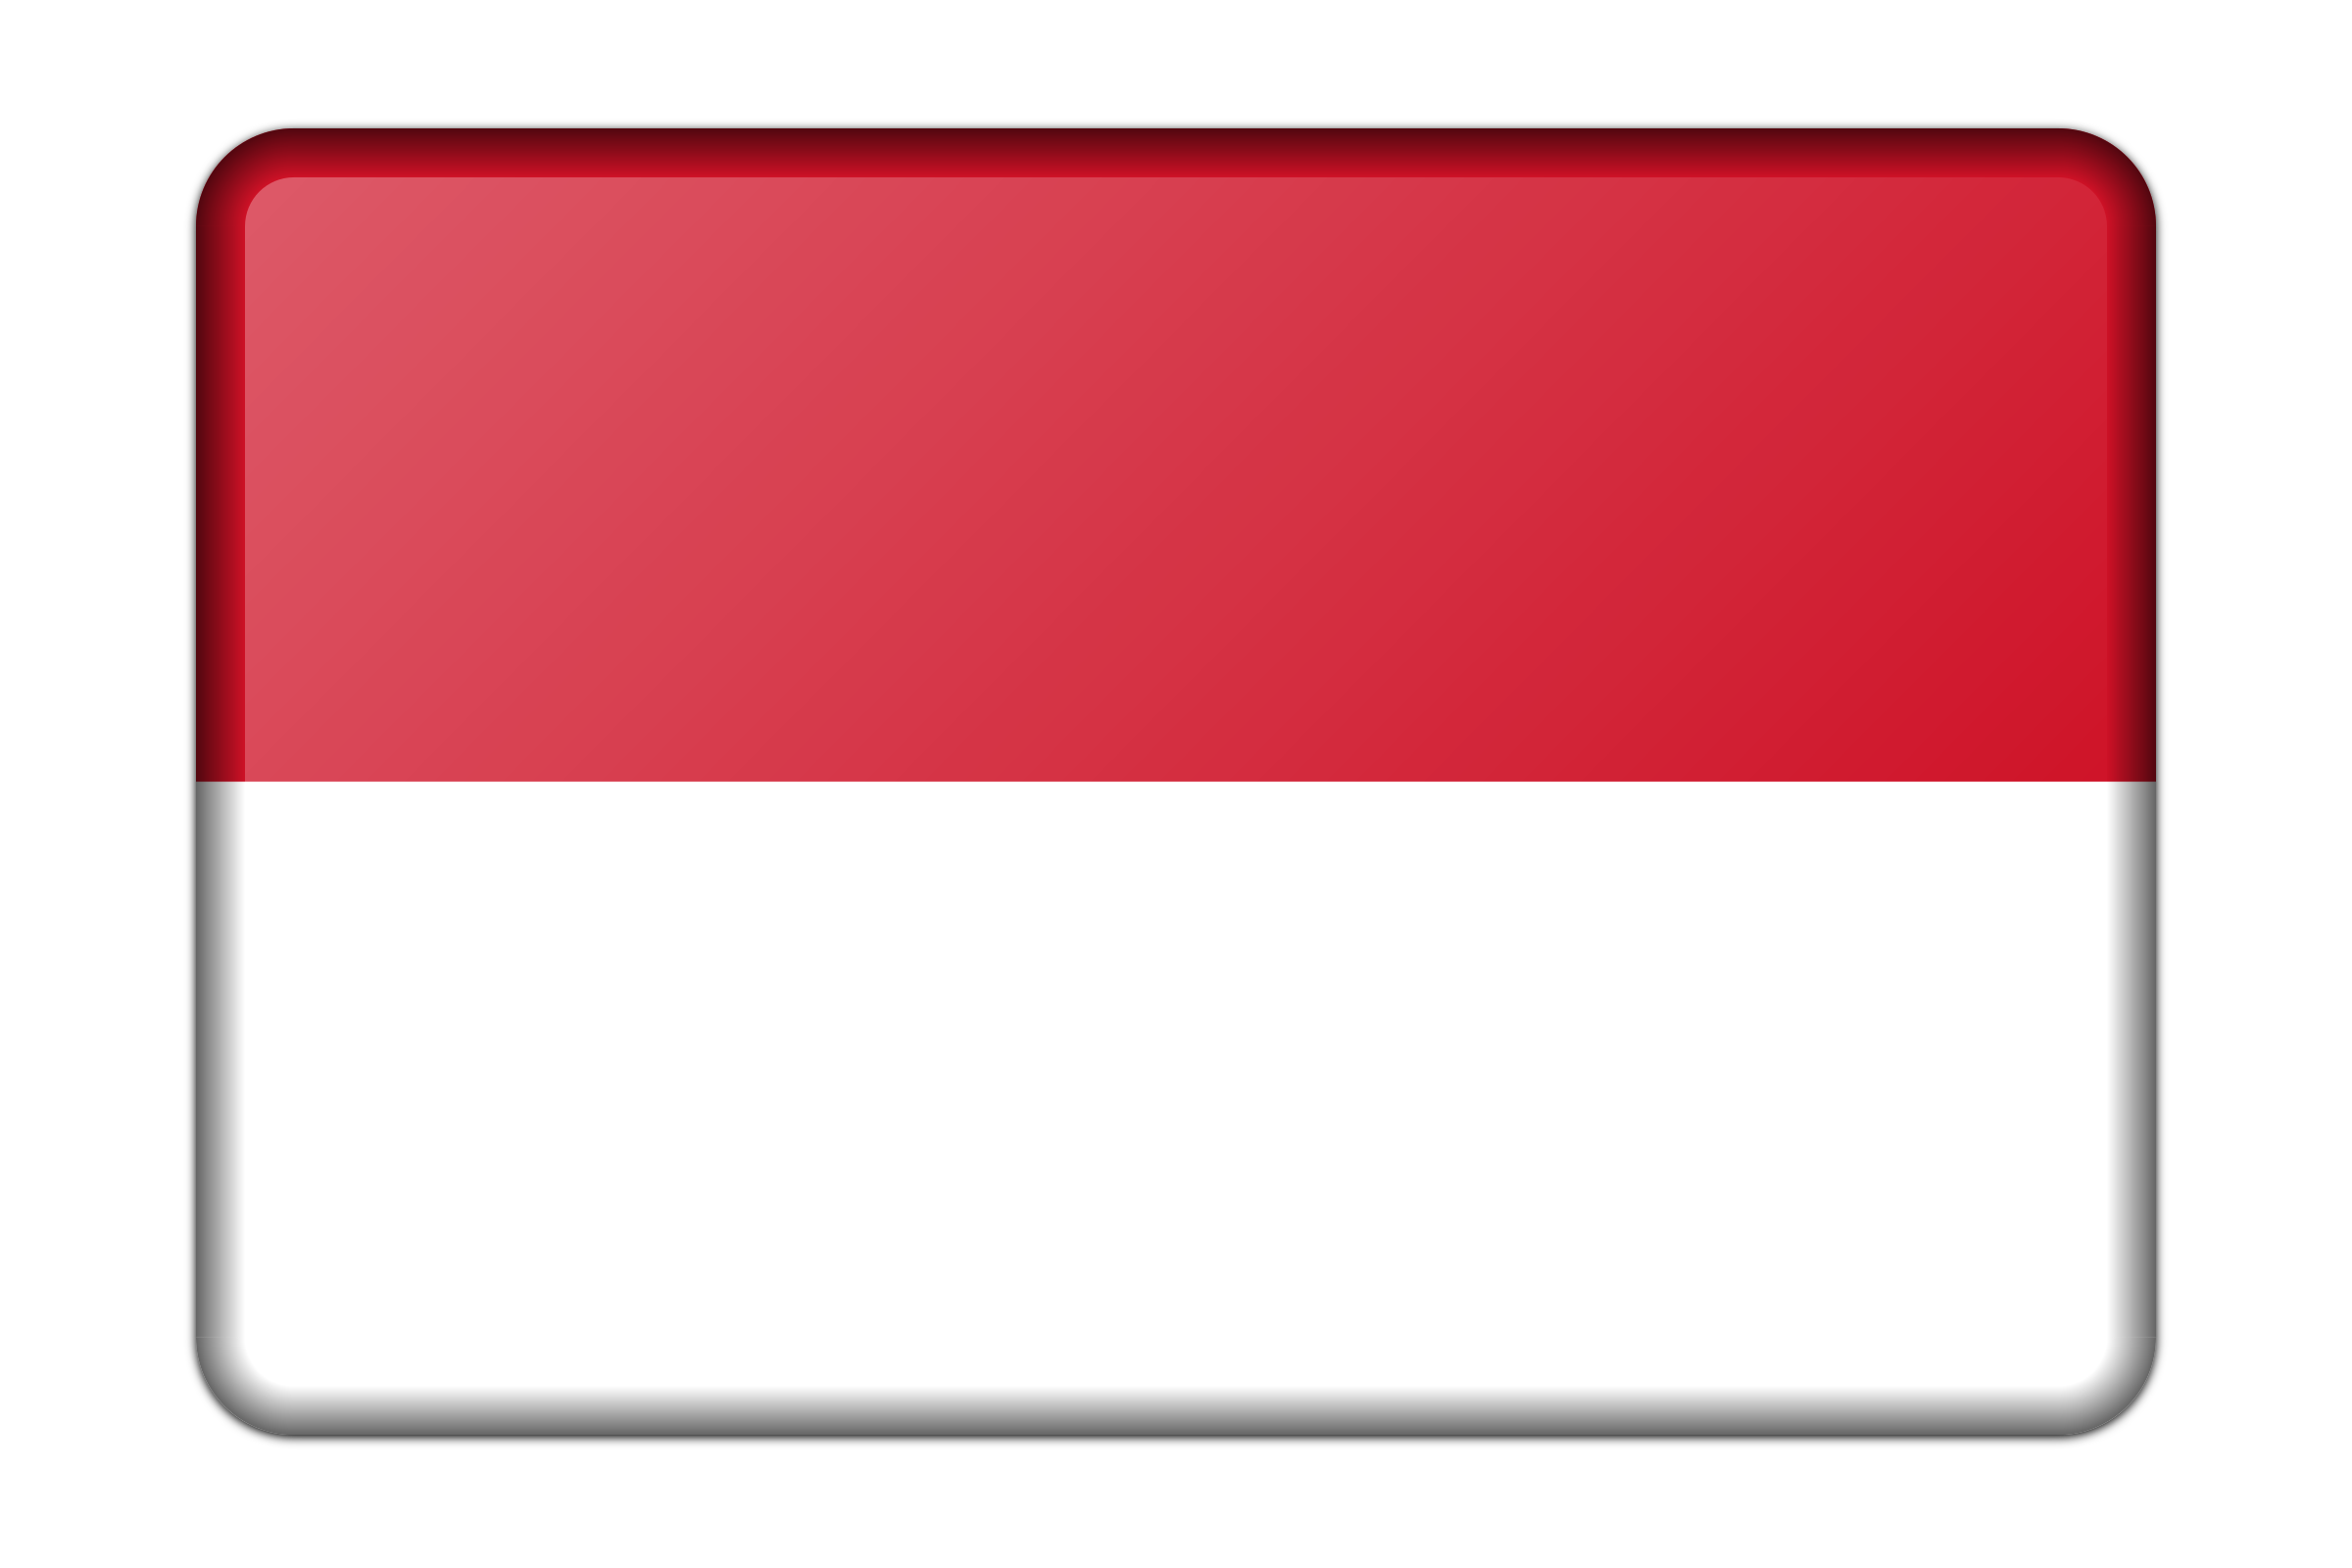 Indonesia flag clipart clip art library Clipart - Indonesia flag (bevelled) clip art library